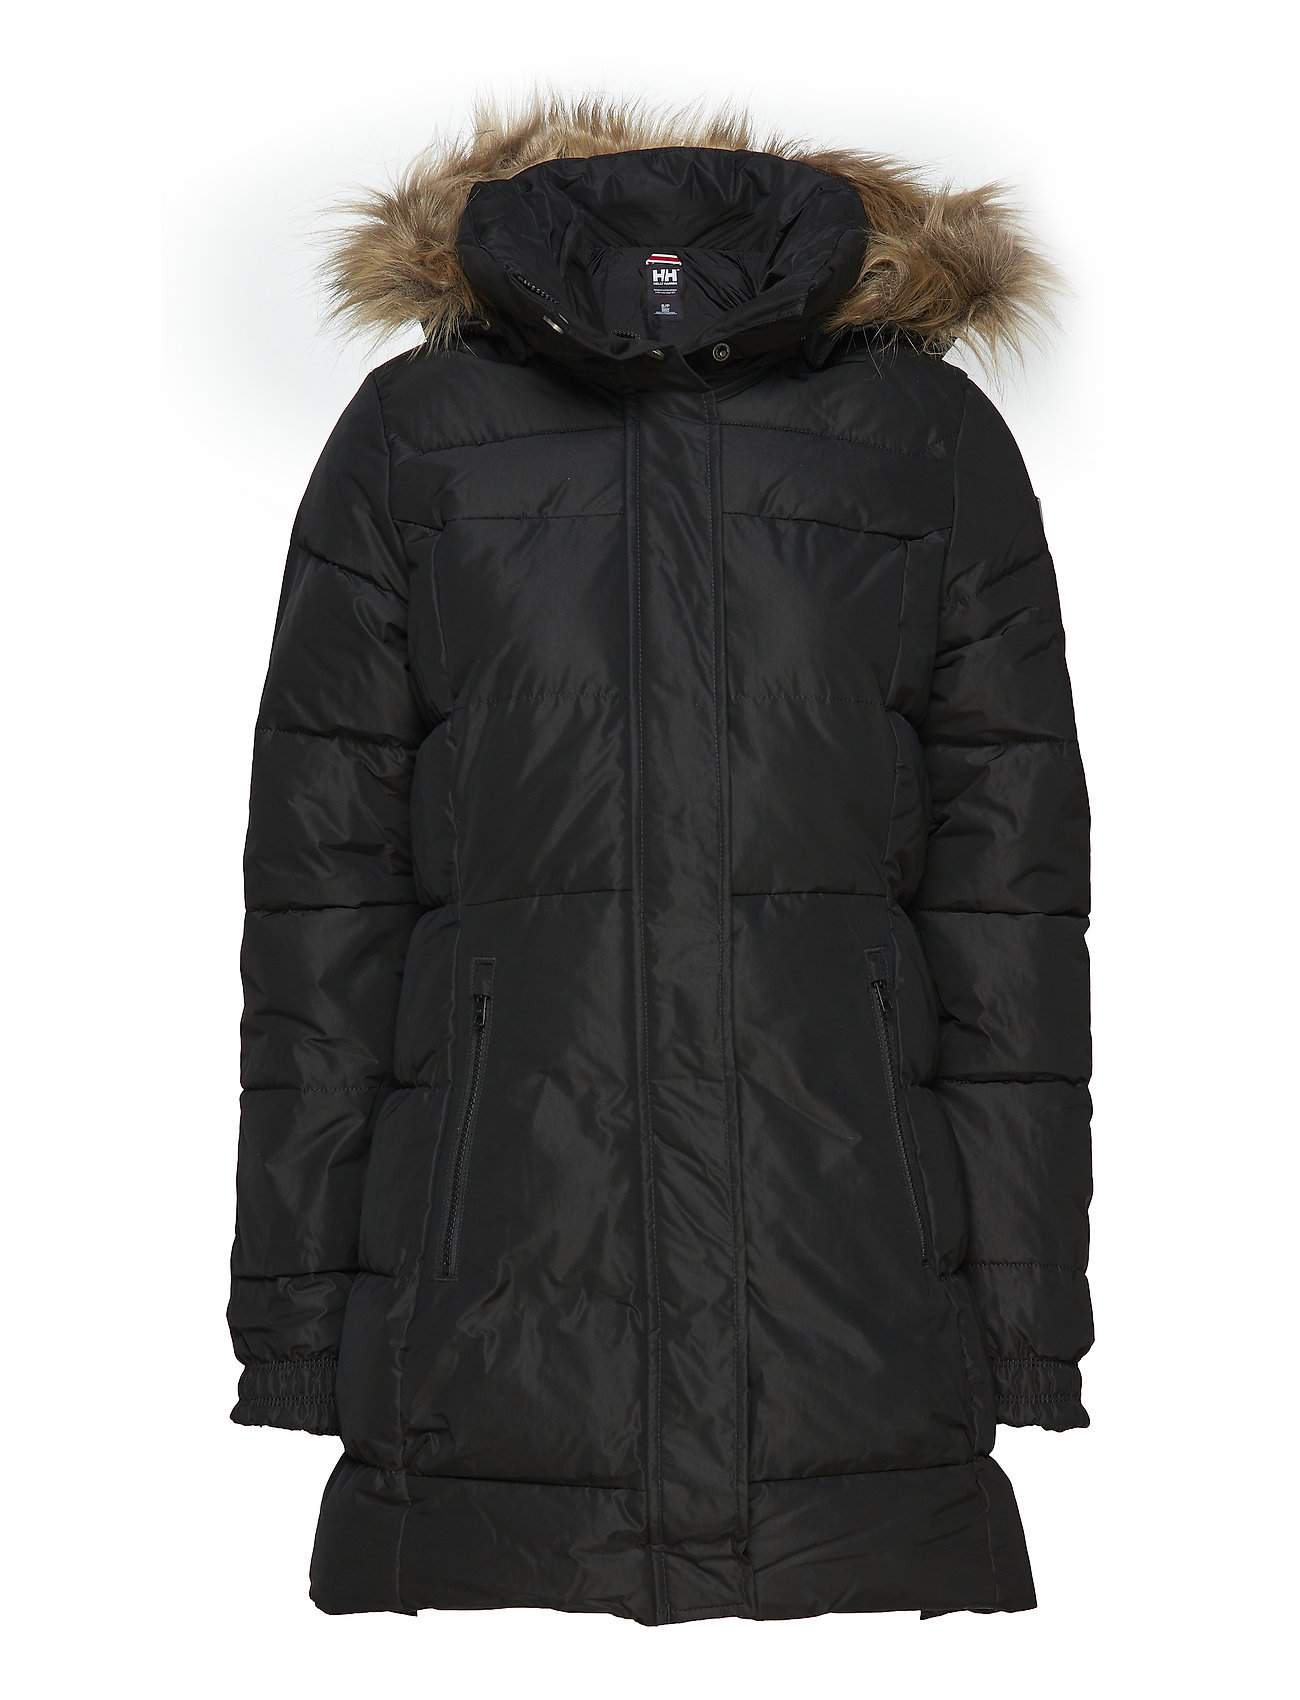 1f7ac6d8c16 W Blume Puffy Parka (Black) (£203.40) - Helly Hansen -